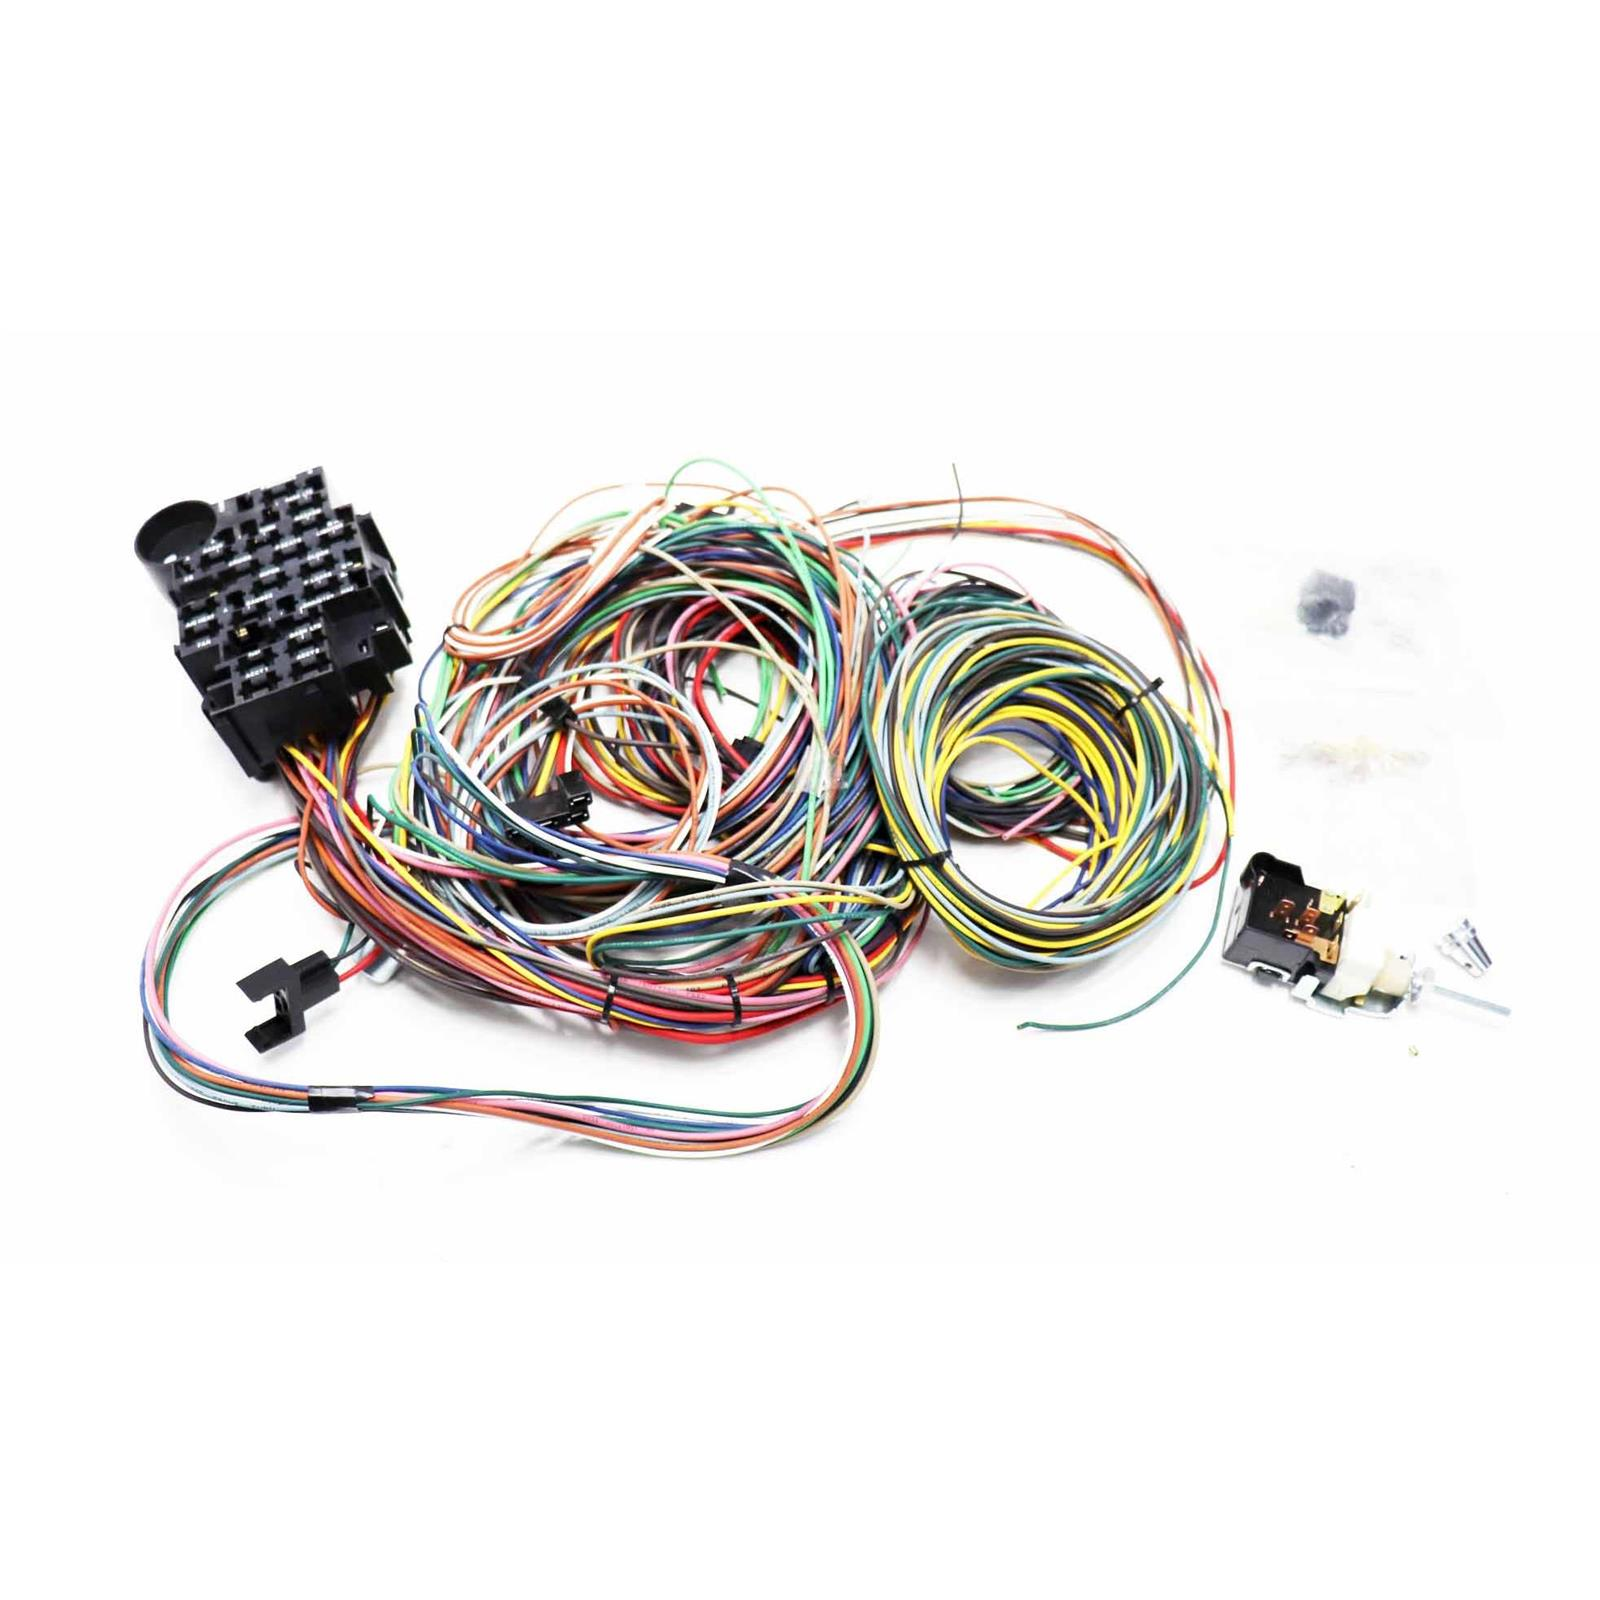 hight resolution of race car wiring harness painless 50003 universal wiring library 10 painless wiring harness race car wiring harness painless 50003 universal